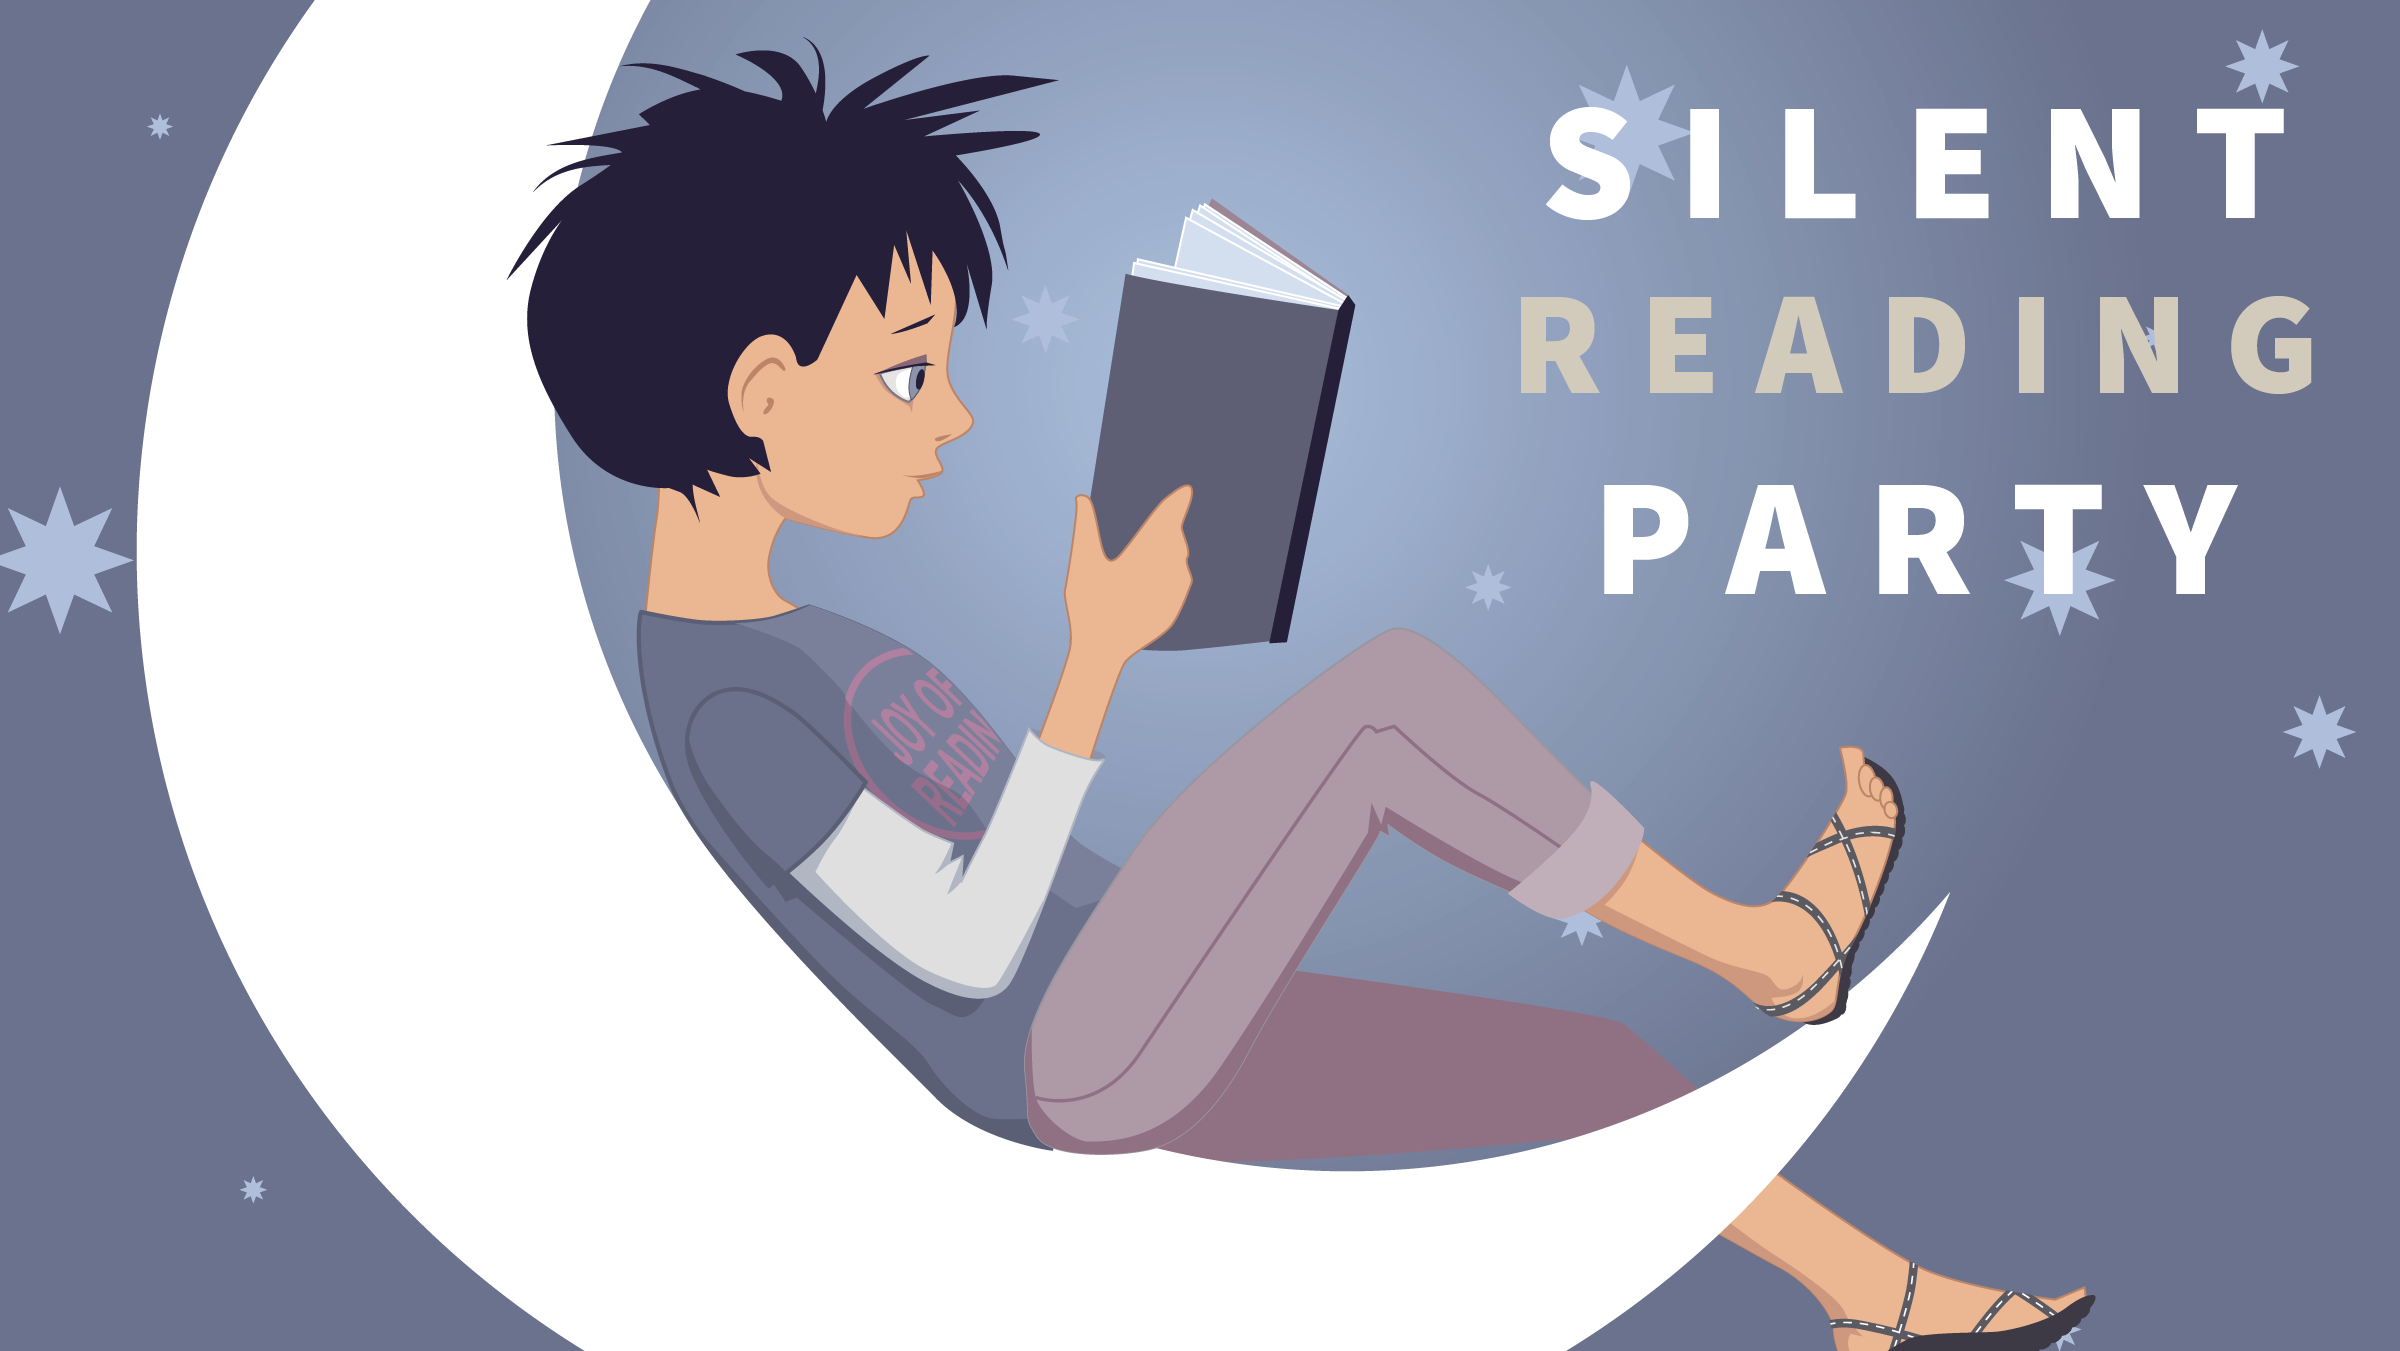 Silent Reading Party-08.png